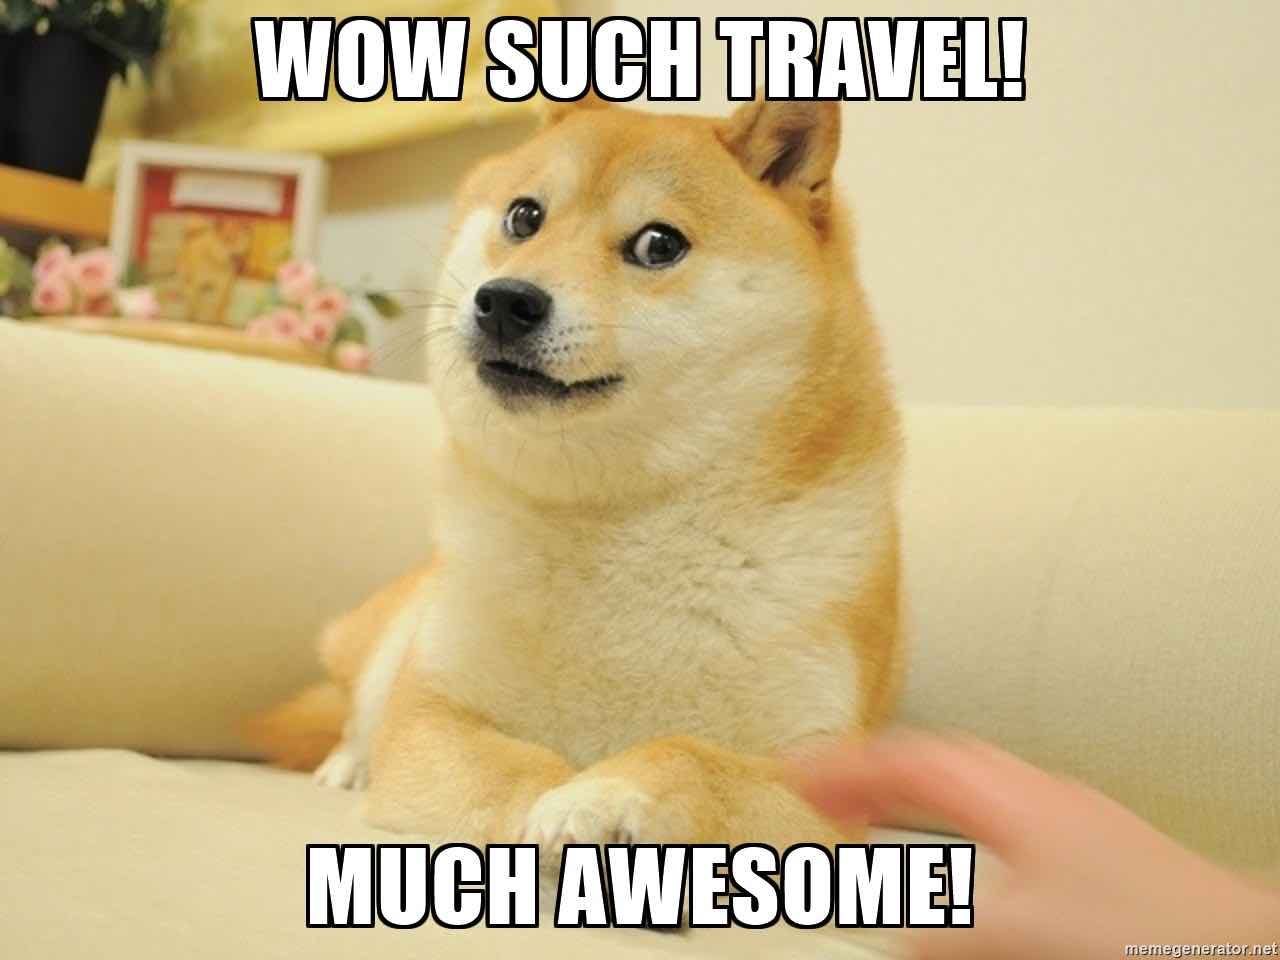 Image of: Funny Memes Travel Memes Funny Hilarious Geeky Explorer 33 Funny Travel Memes That Accurately Describe Going On Vacation